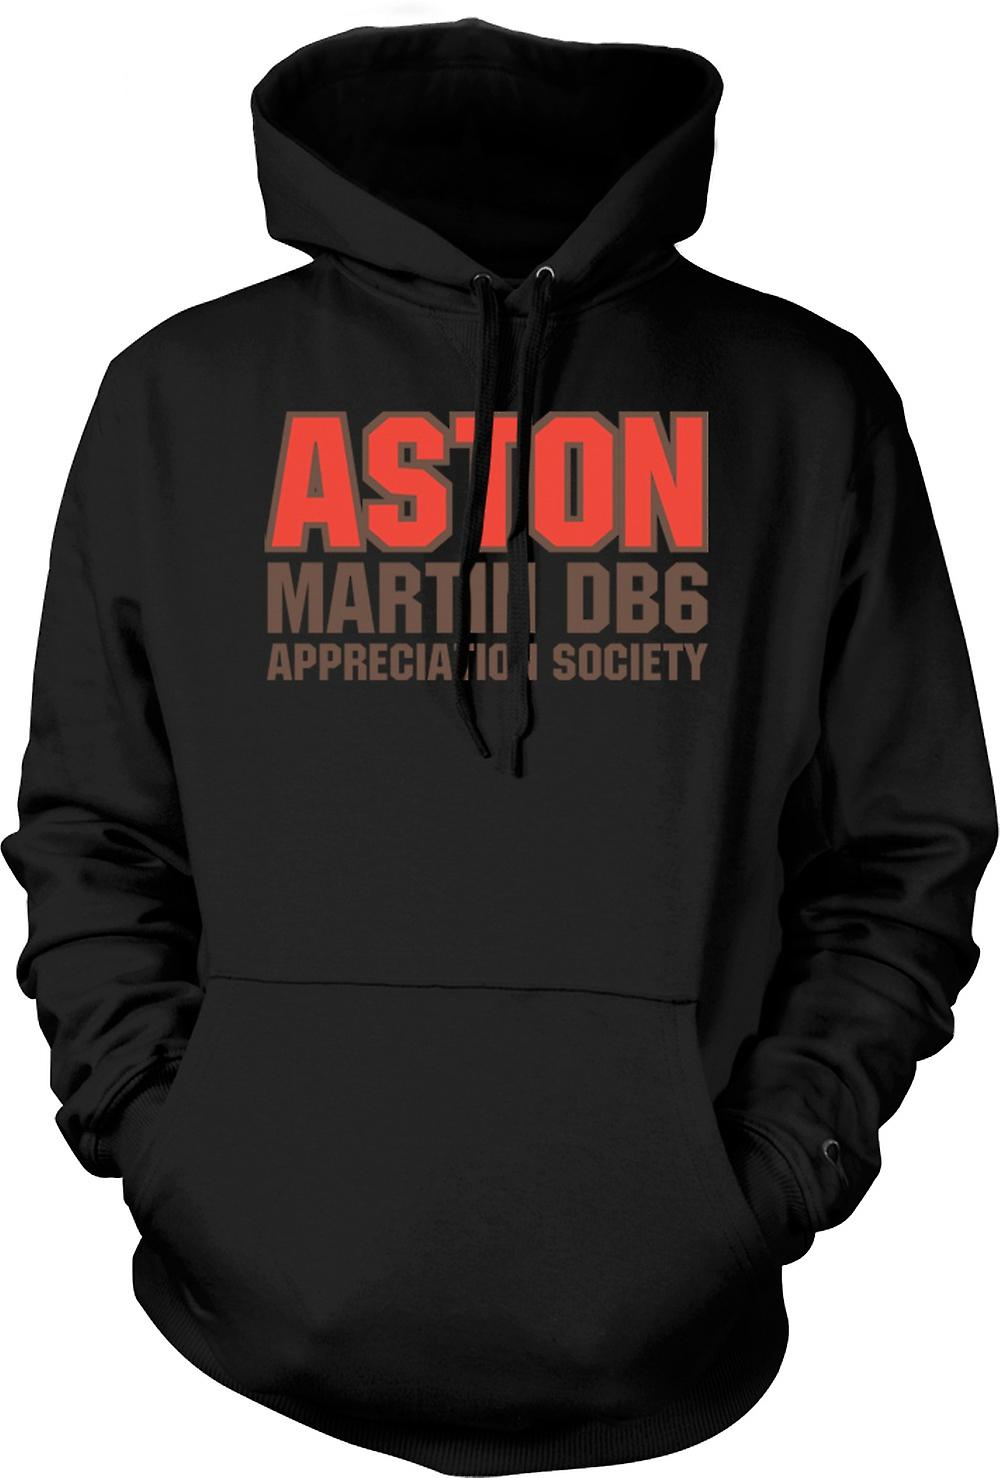 Mens Hoodie - Aston Martin DB6 Appreciation Society